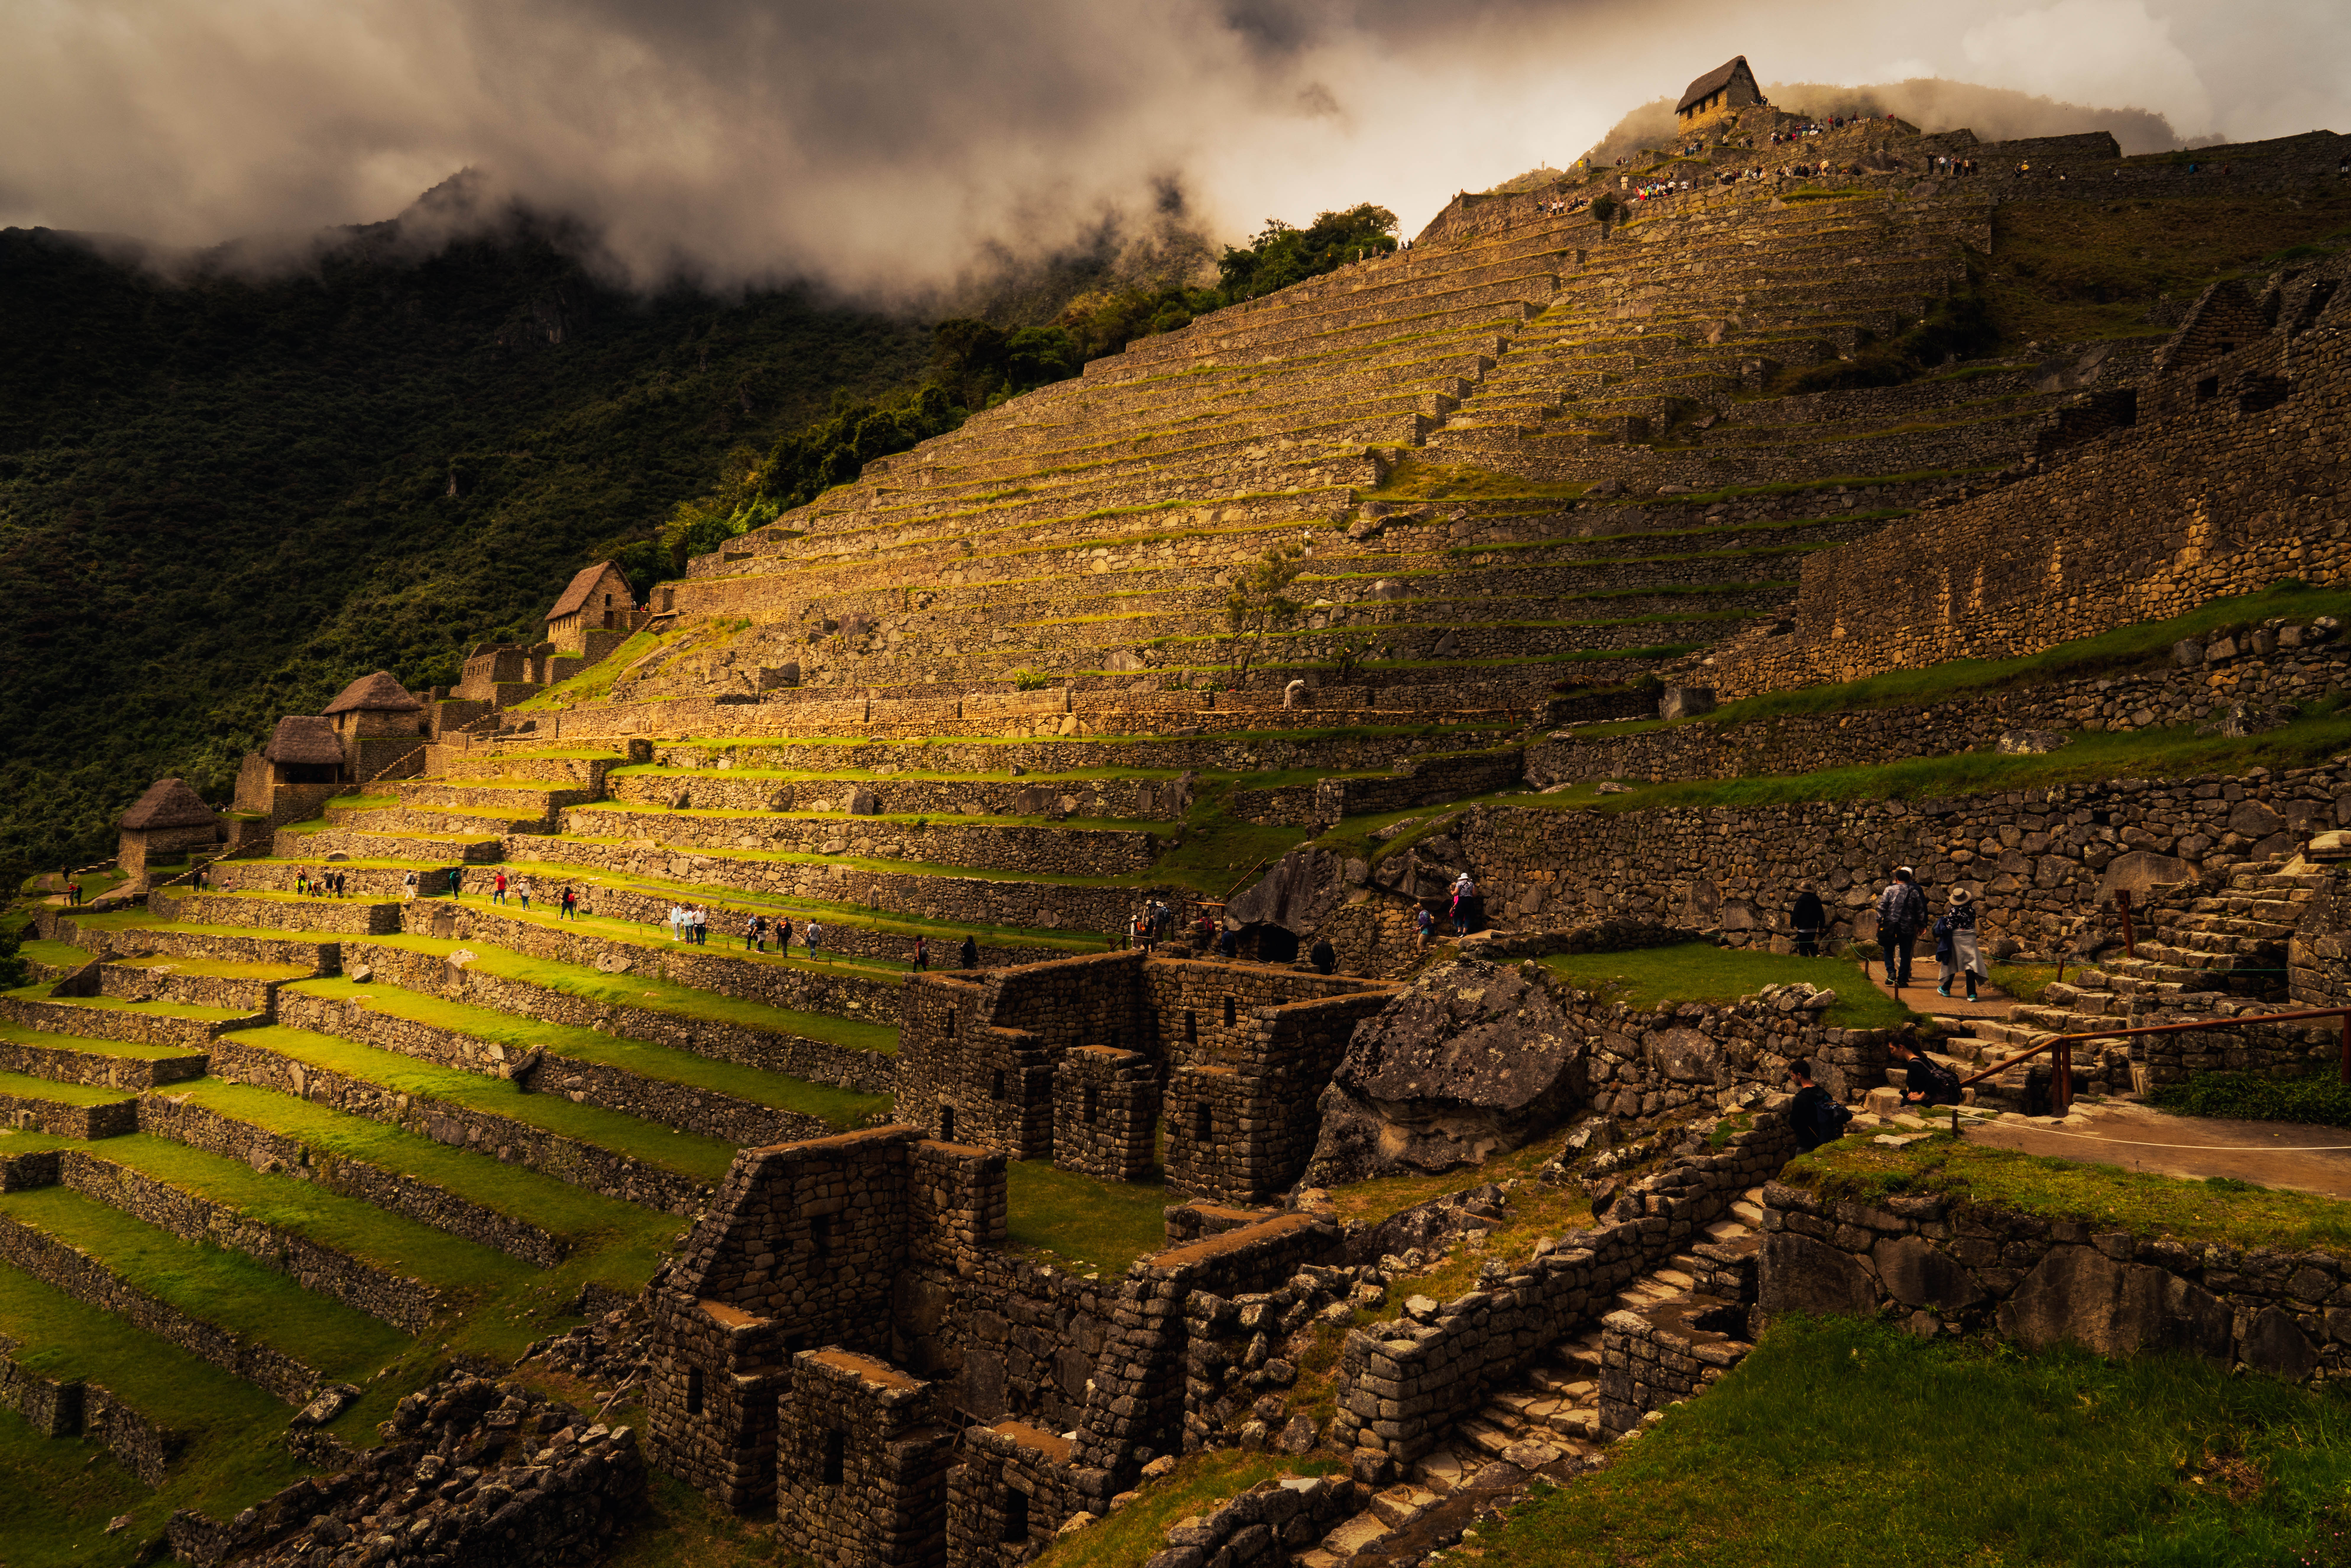 The guard house and stair terraces of Machu Picchu